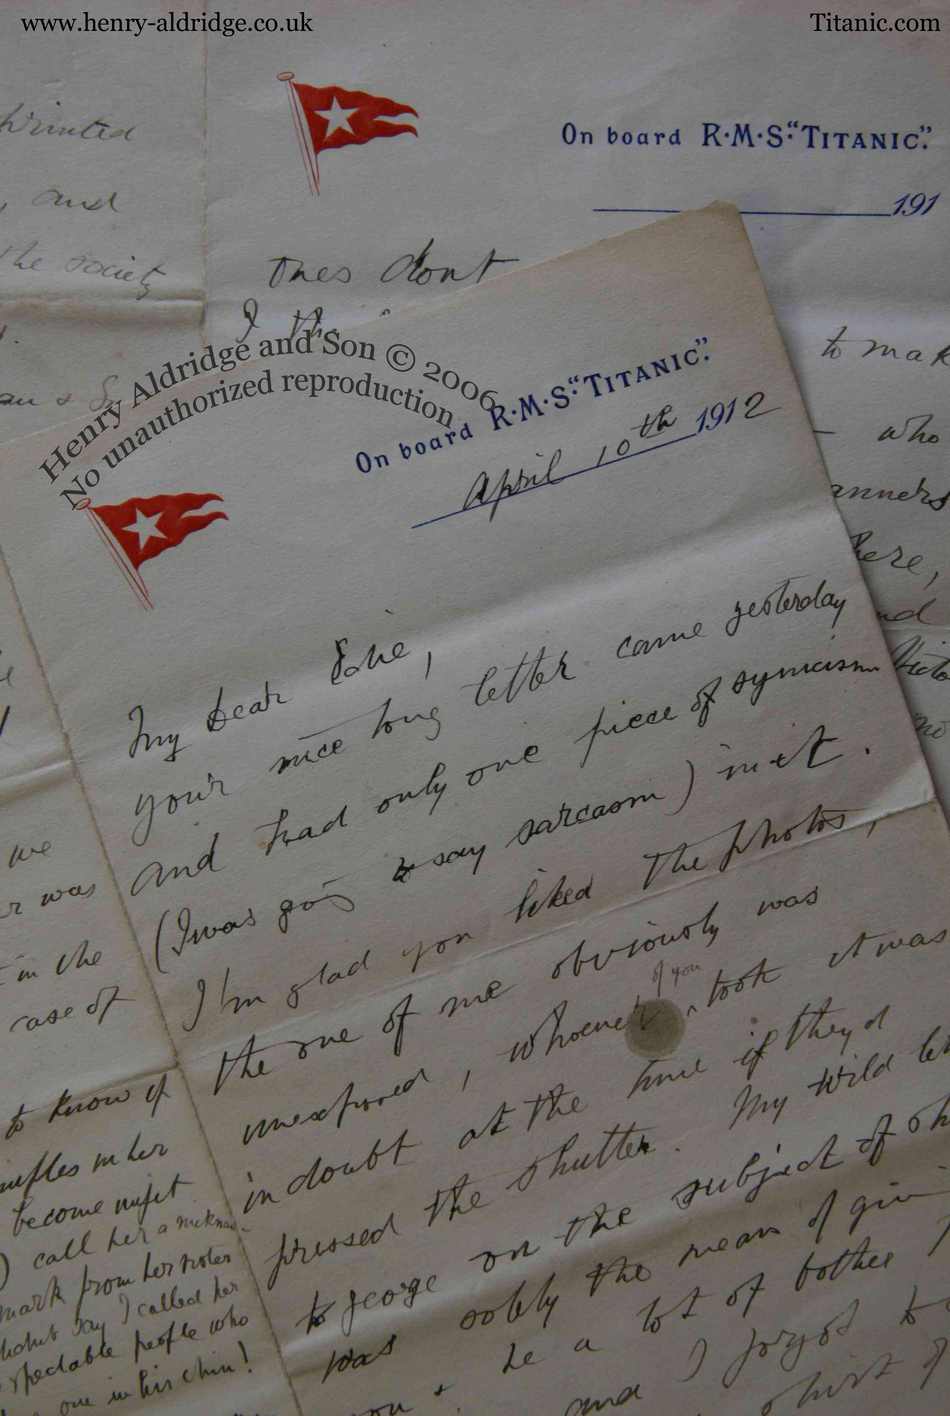 RMS Titanic 8 Page onboard letter by Edward Colley